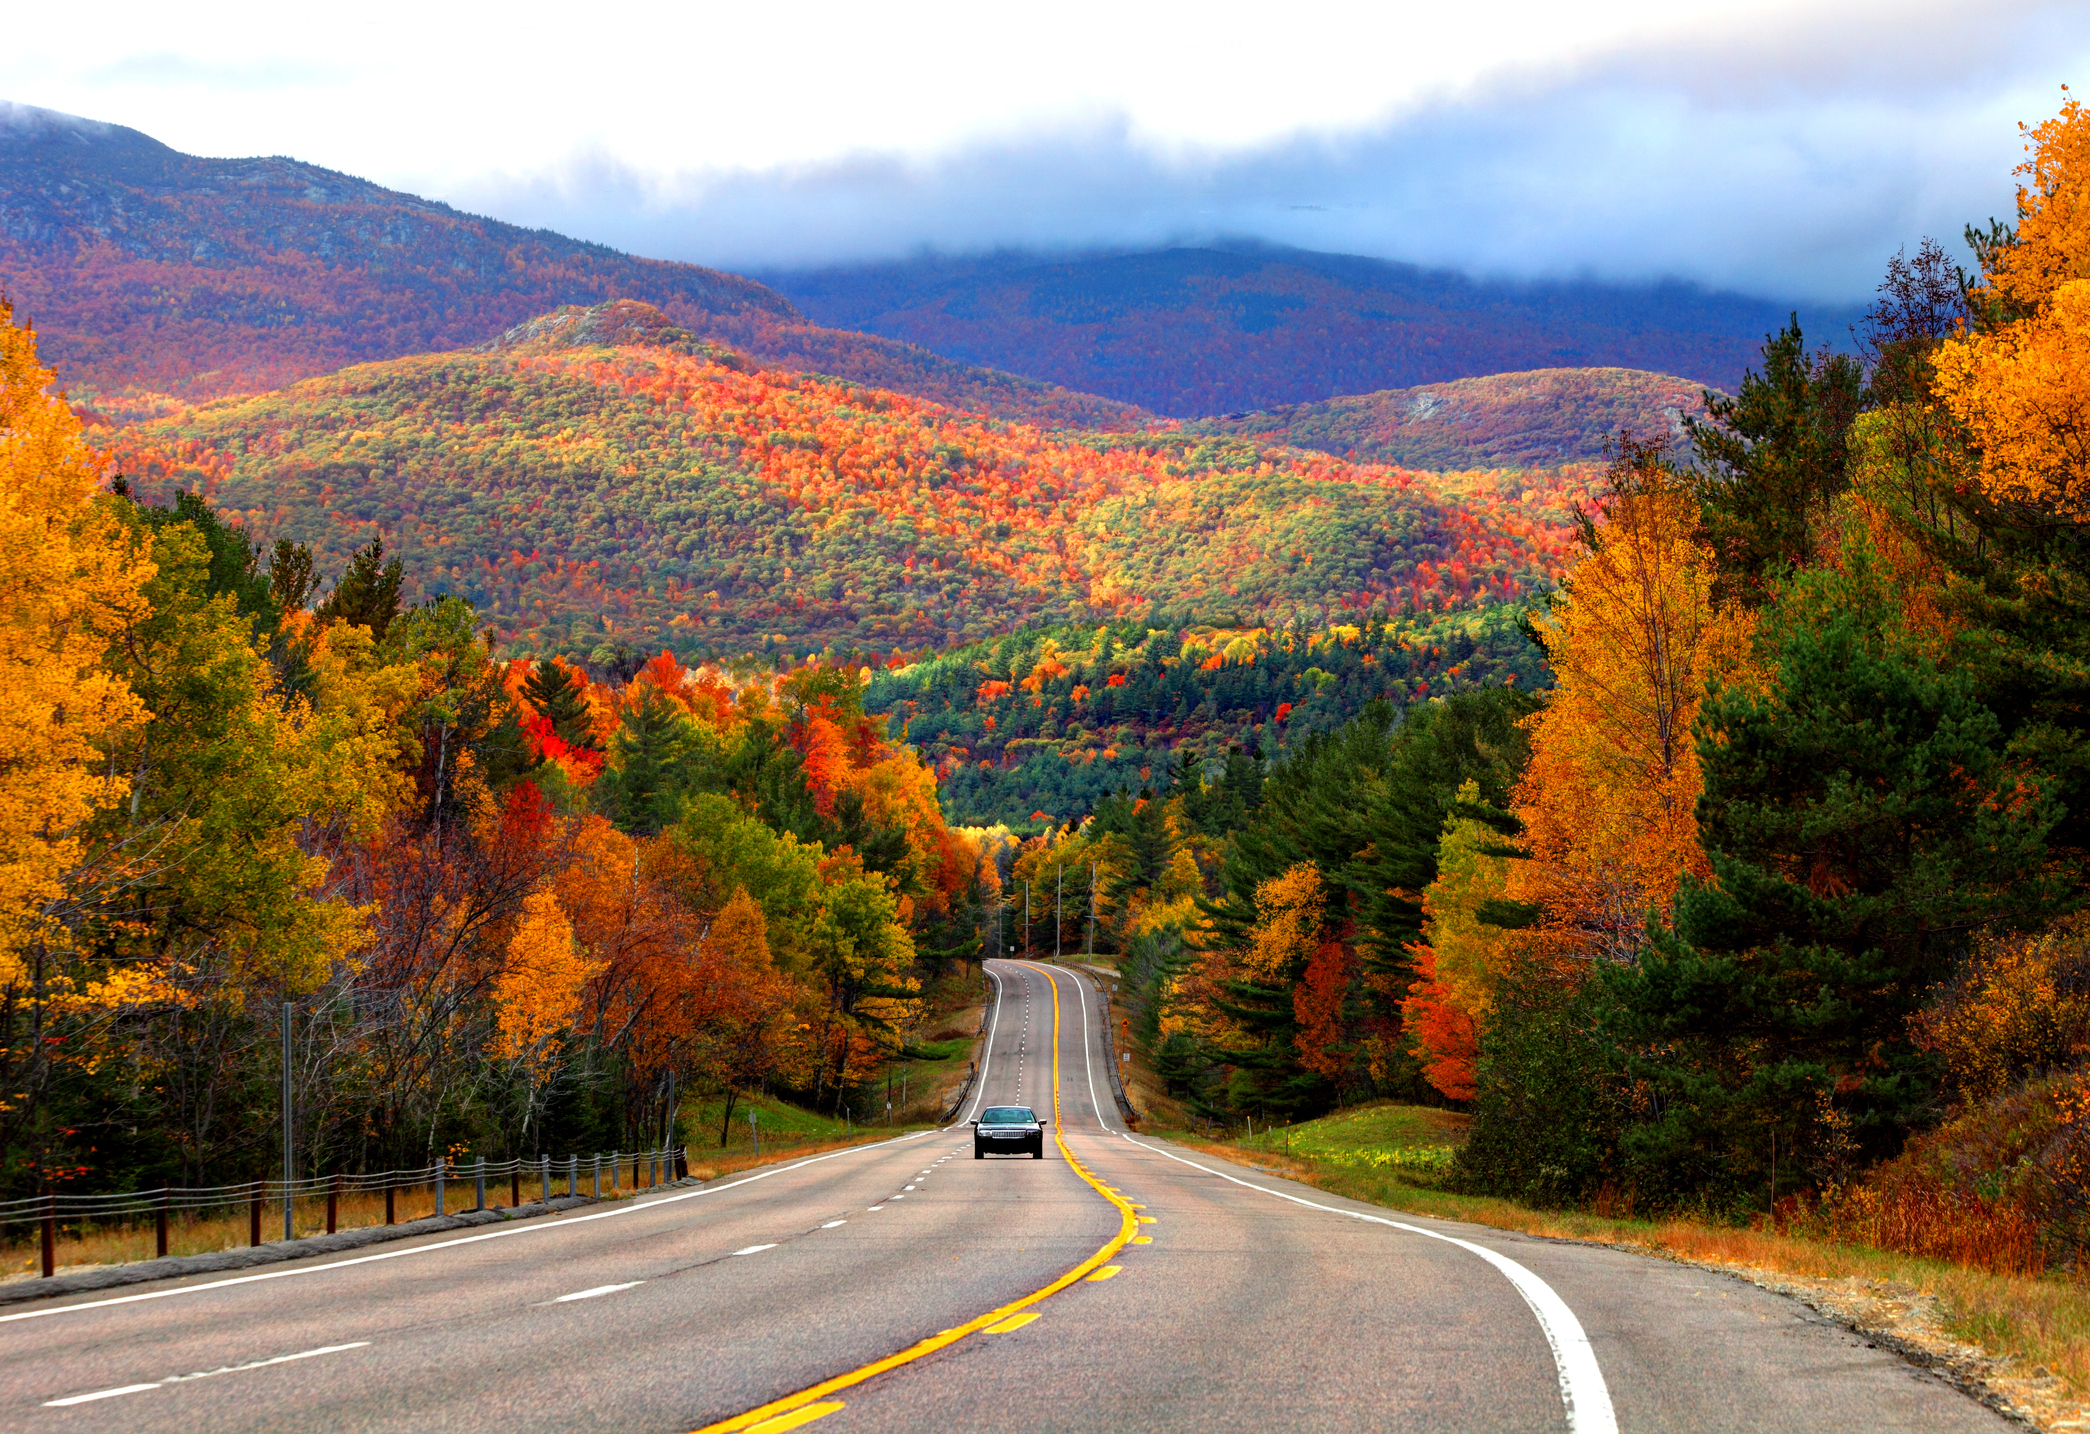 Scenic road in the Adirondacks region of New York during the autumn foliage season